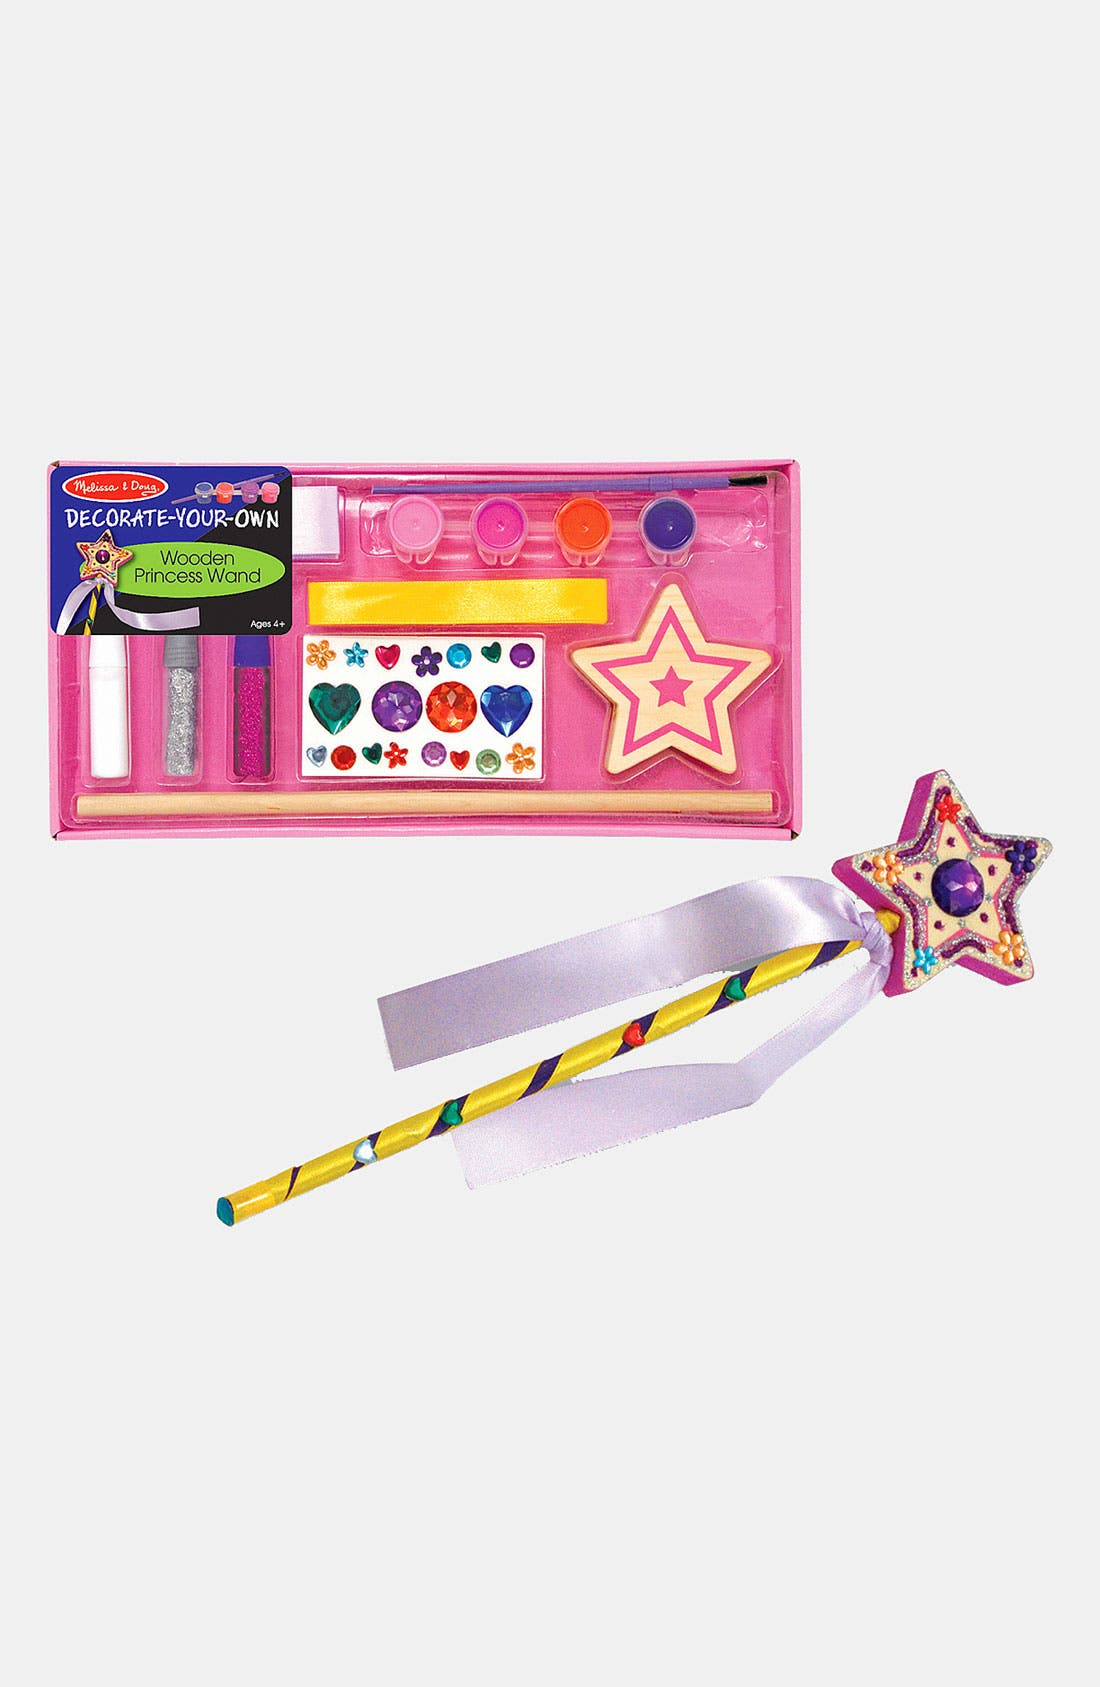 Alternate Image 1 Selected - Melissa & Doug 'Decorate-Your-Own' Wooden Princess Wand